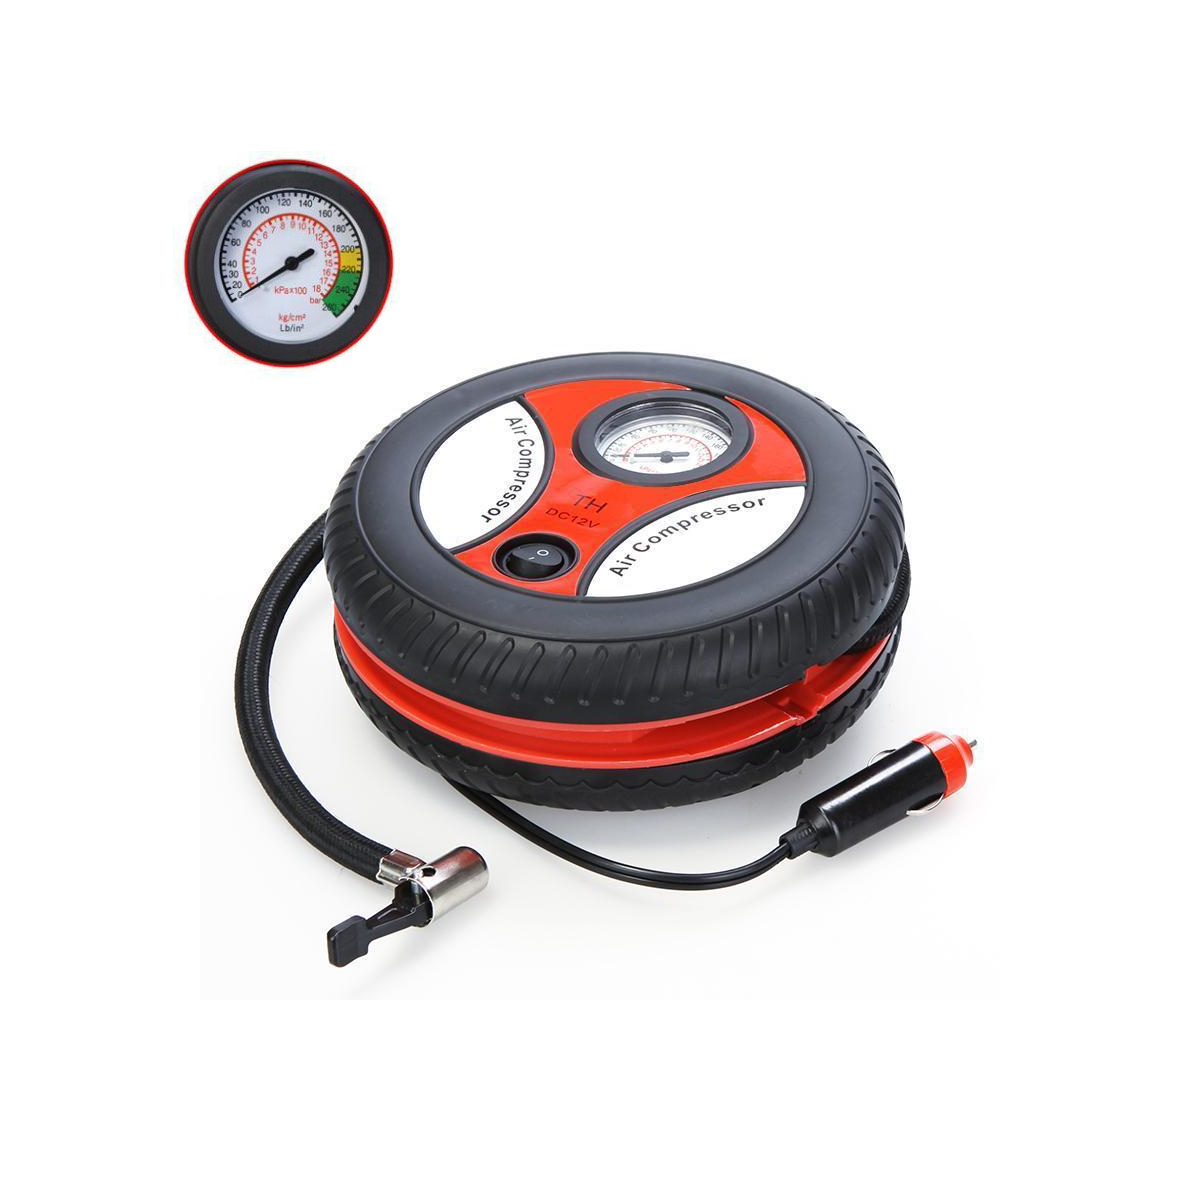 IAG-Mini-Portable-Electric-12v-Tire-Inflator-AirCompressor-6-1200×1200